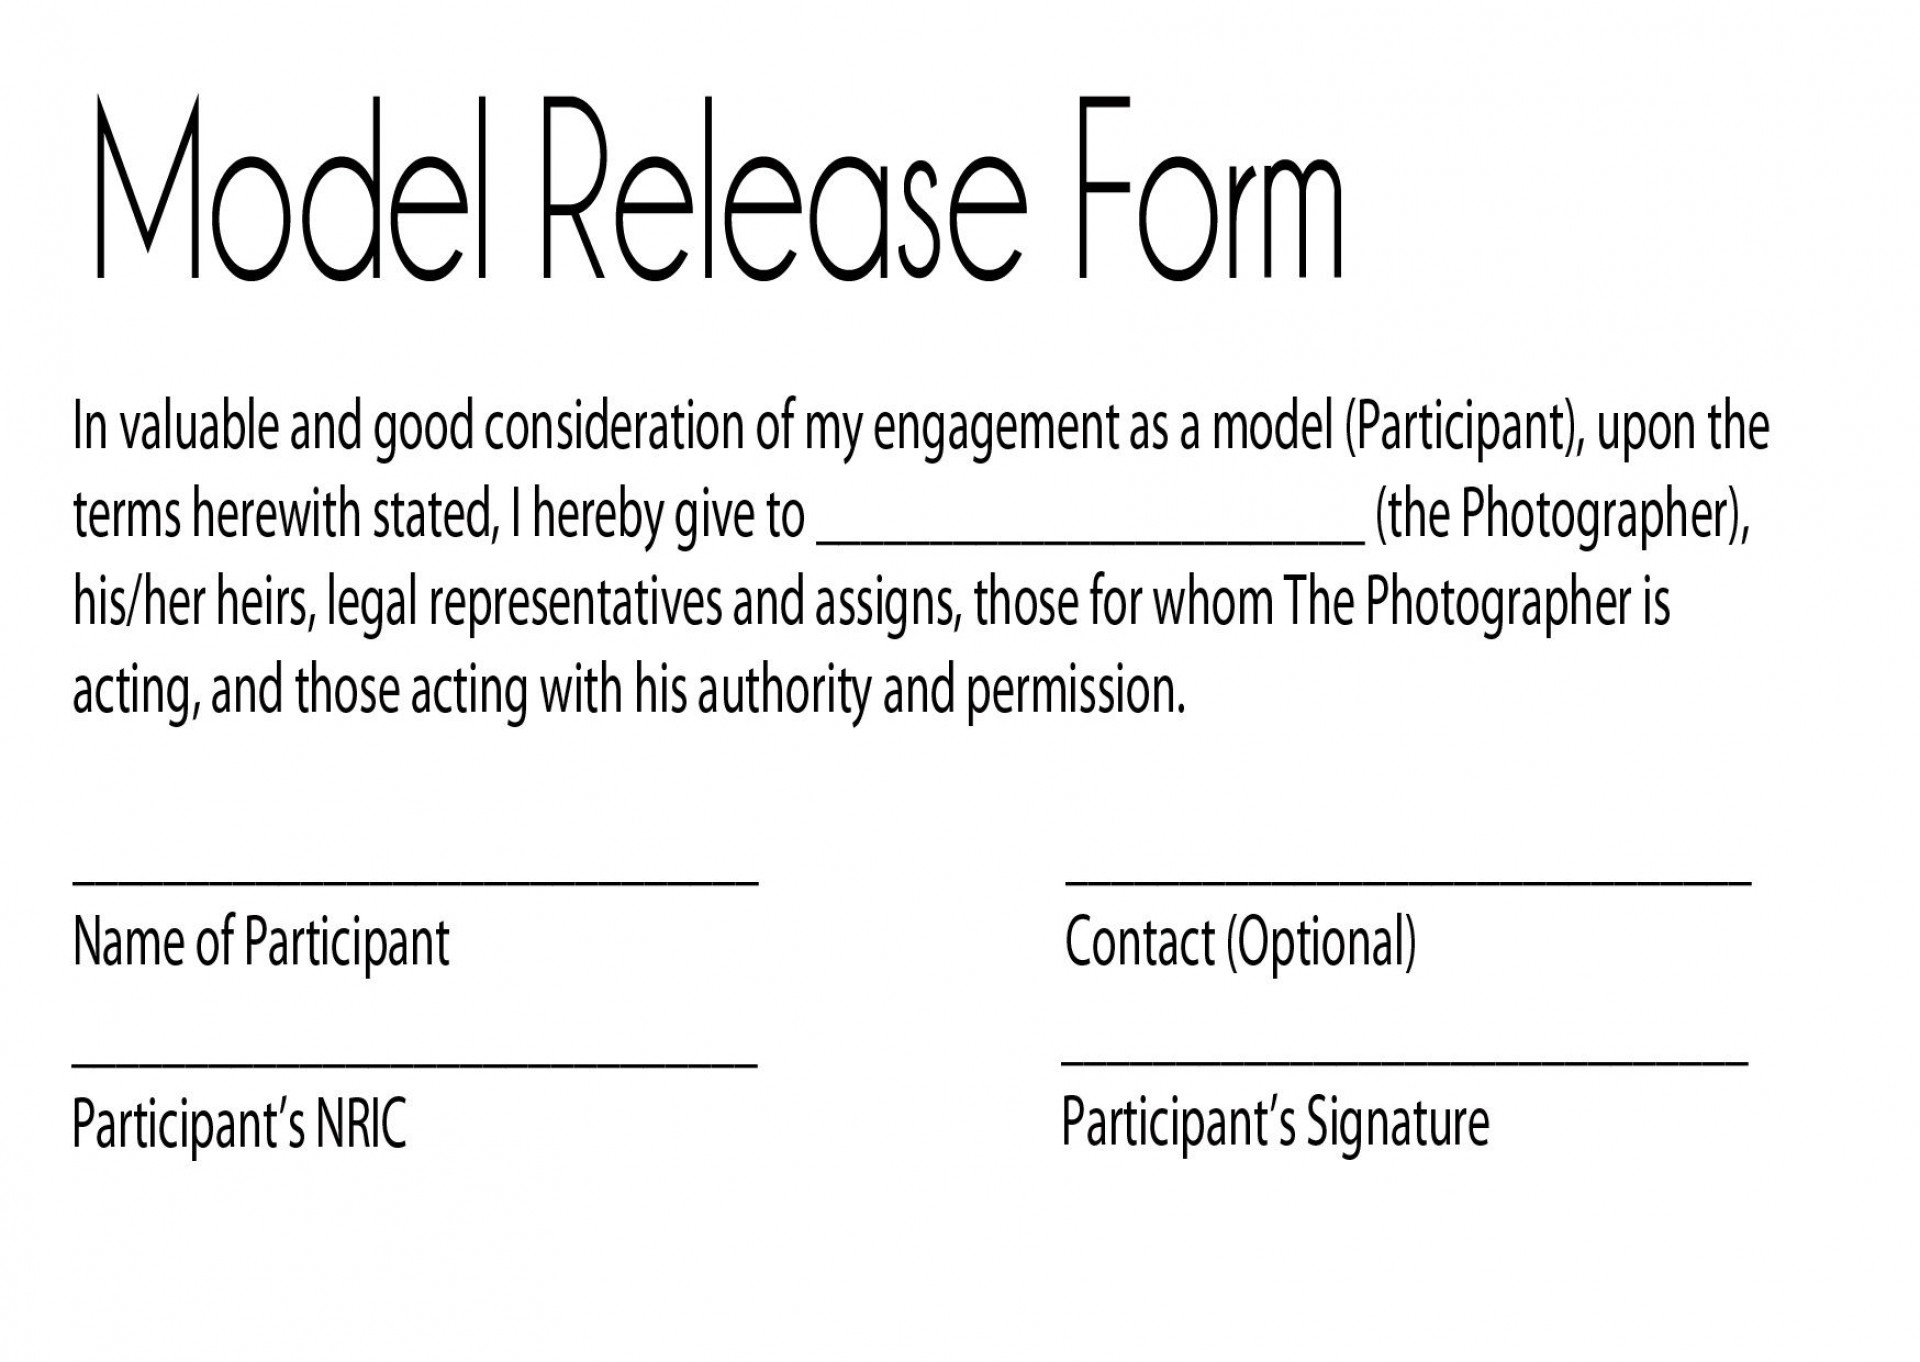 002 Surprising Model Release Form Template Picture  Photography Uk Gdpr Australia1920